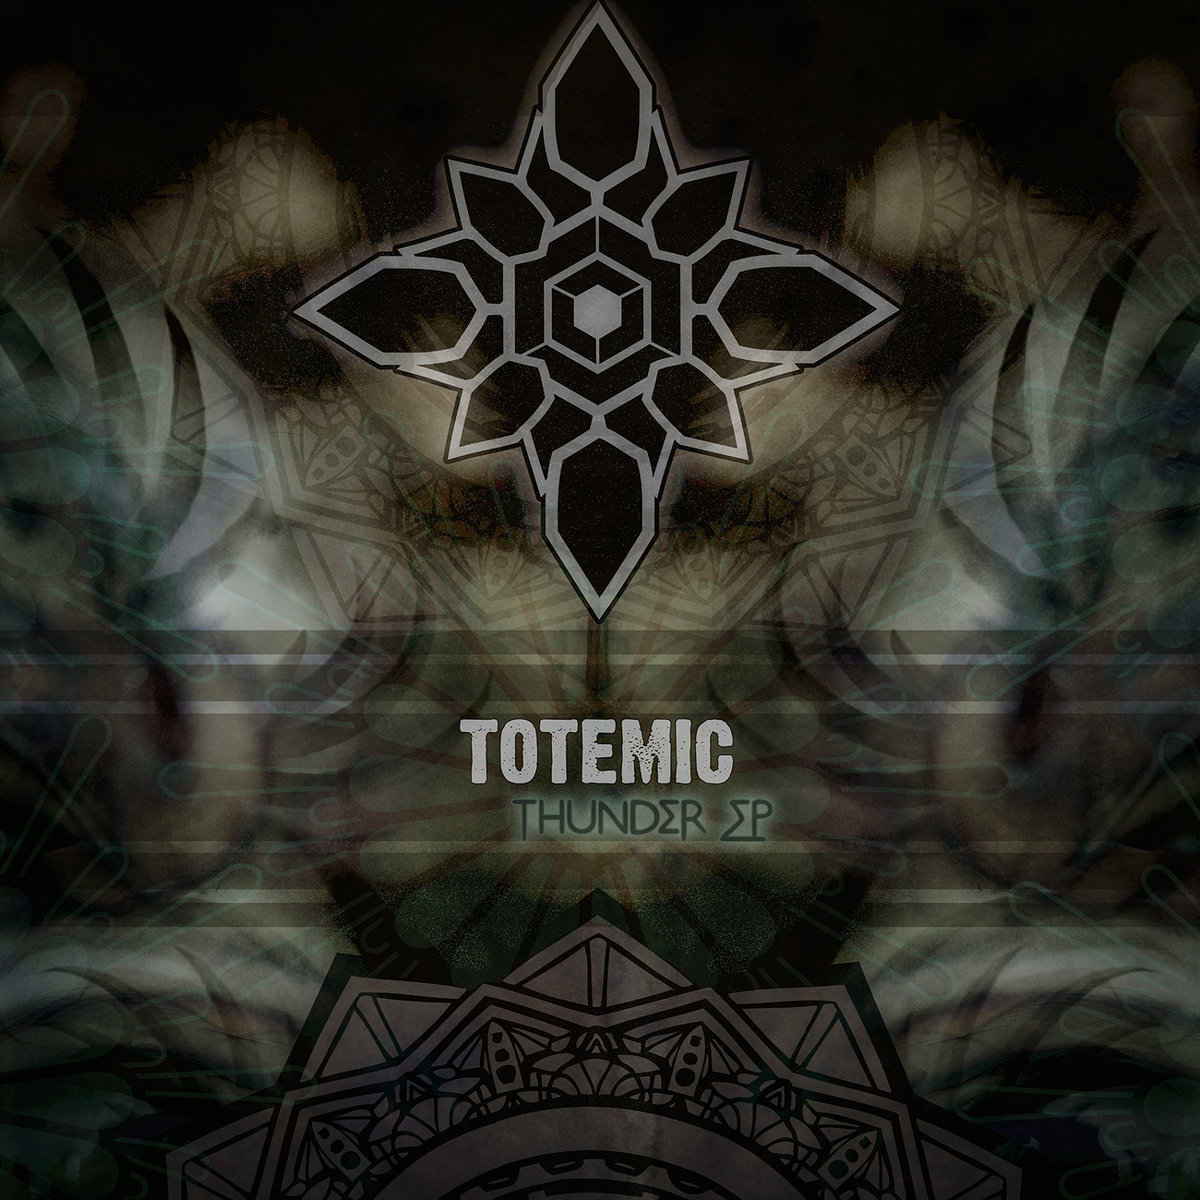 Totemic - Thunder @ 'Thunder' album (bass, drum & bass)